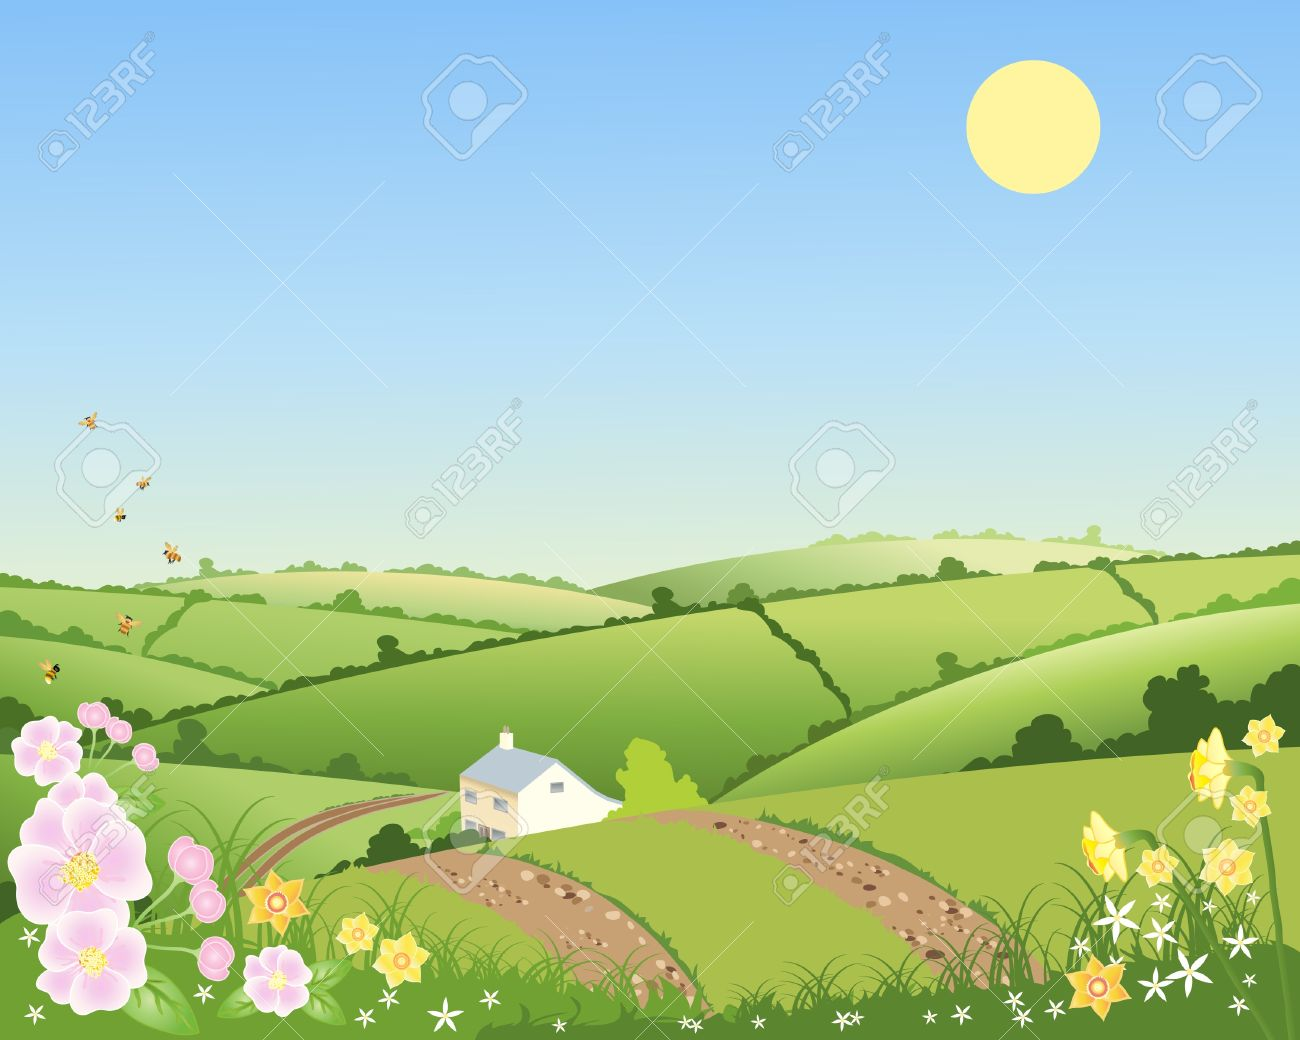 Rolling Hills Illustration Pictures to Pin on Pinterest